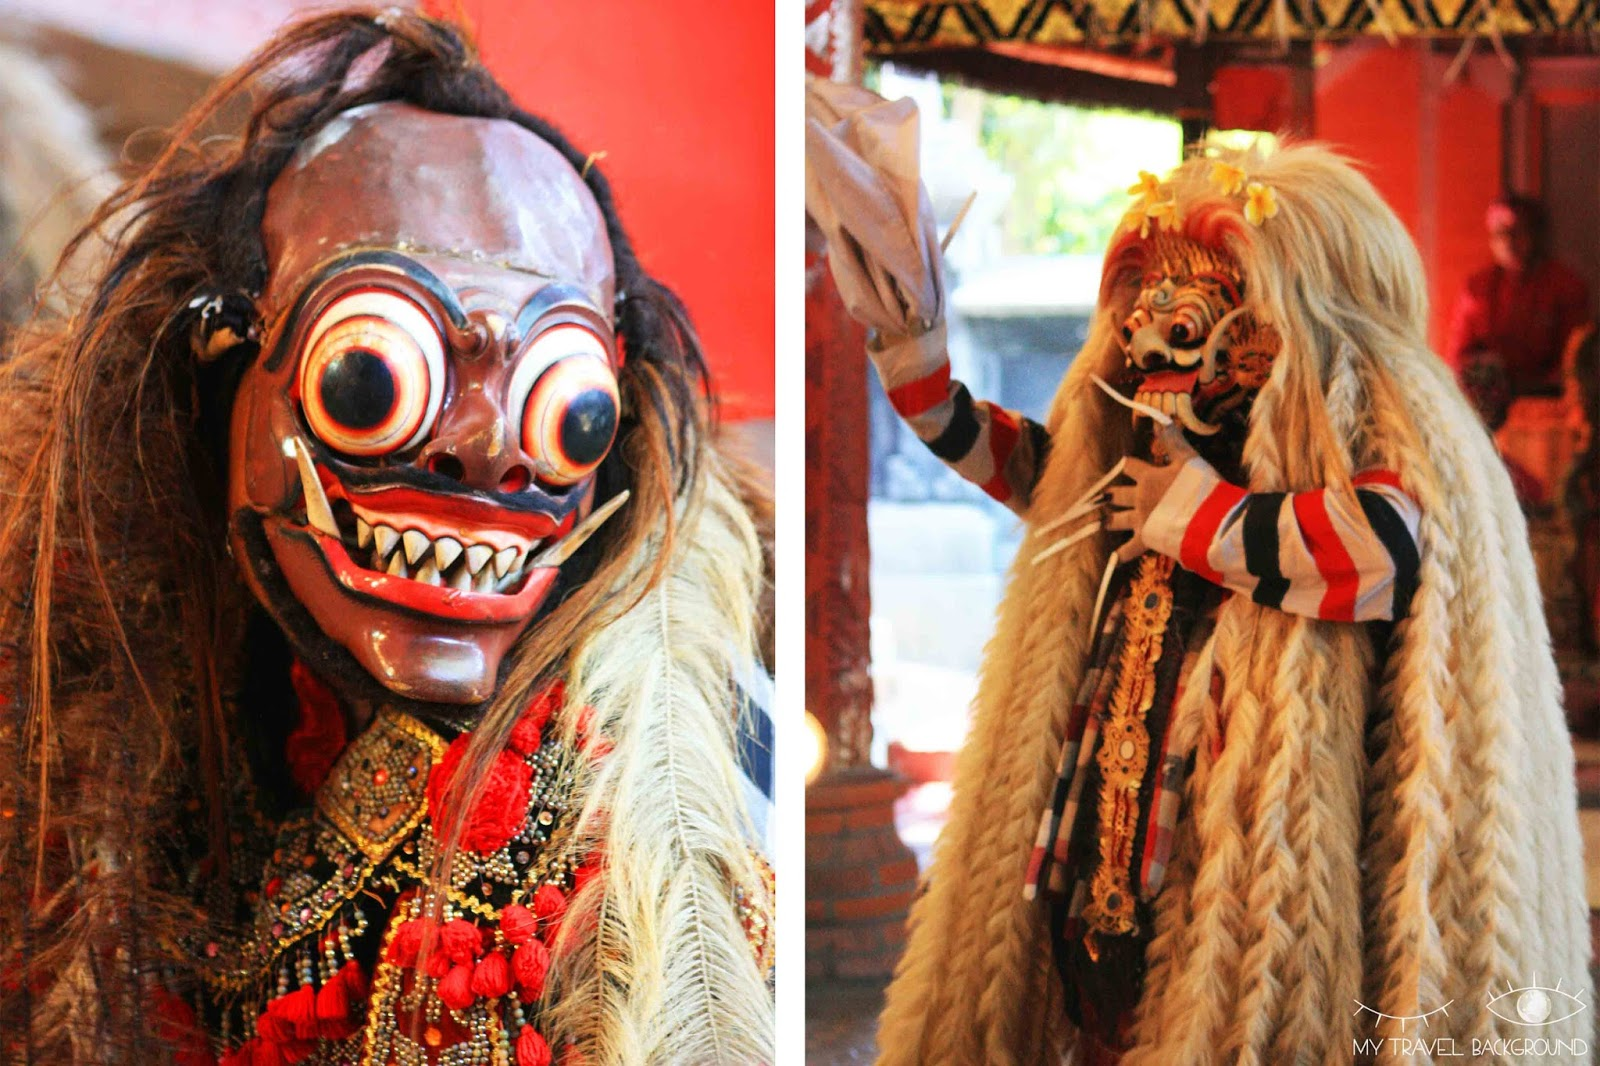 My Travel Background : 6 choses à faire à Ubud, au centre de Bali - Dance du Barong